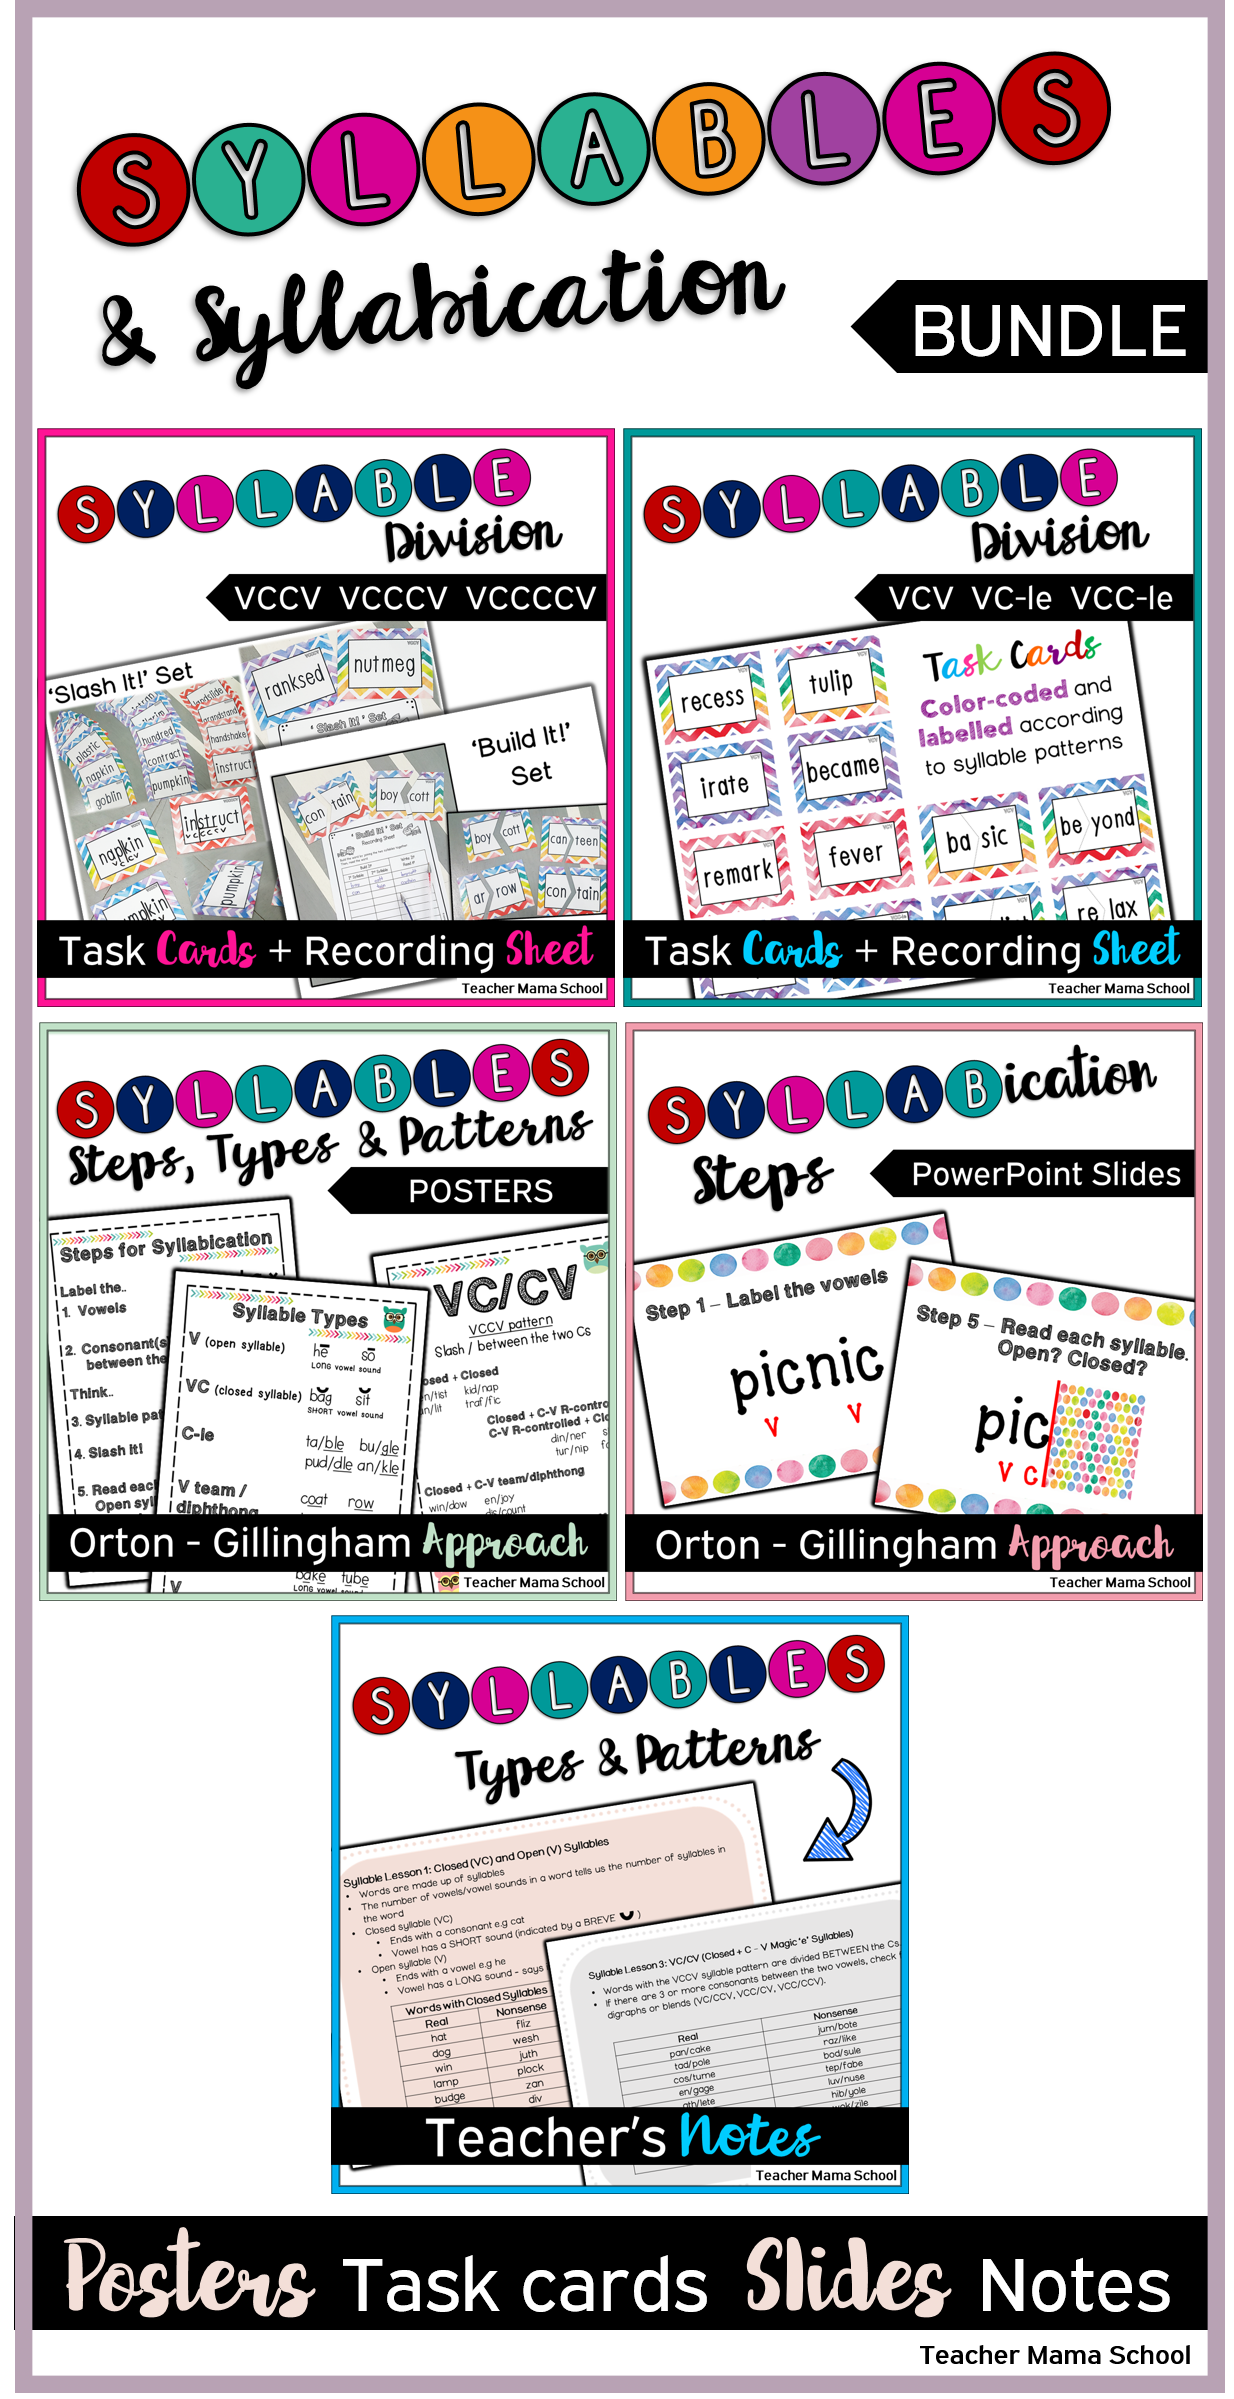 7 Times Tables Worksheets Syllables And Syllabication  Bundle   Syllable Literacy And  Stages Of Mitosis Worksheet Pdf with Multiplying And Dividing Worksheets Teacher Cognitive Distortions Worksheets